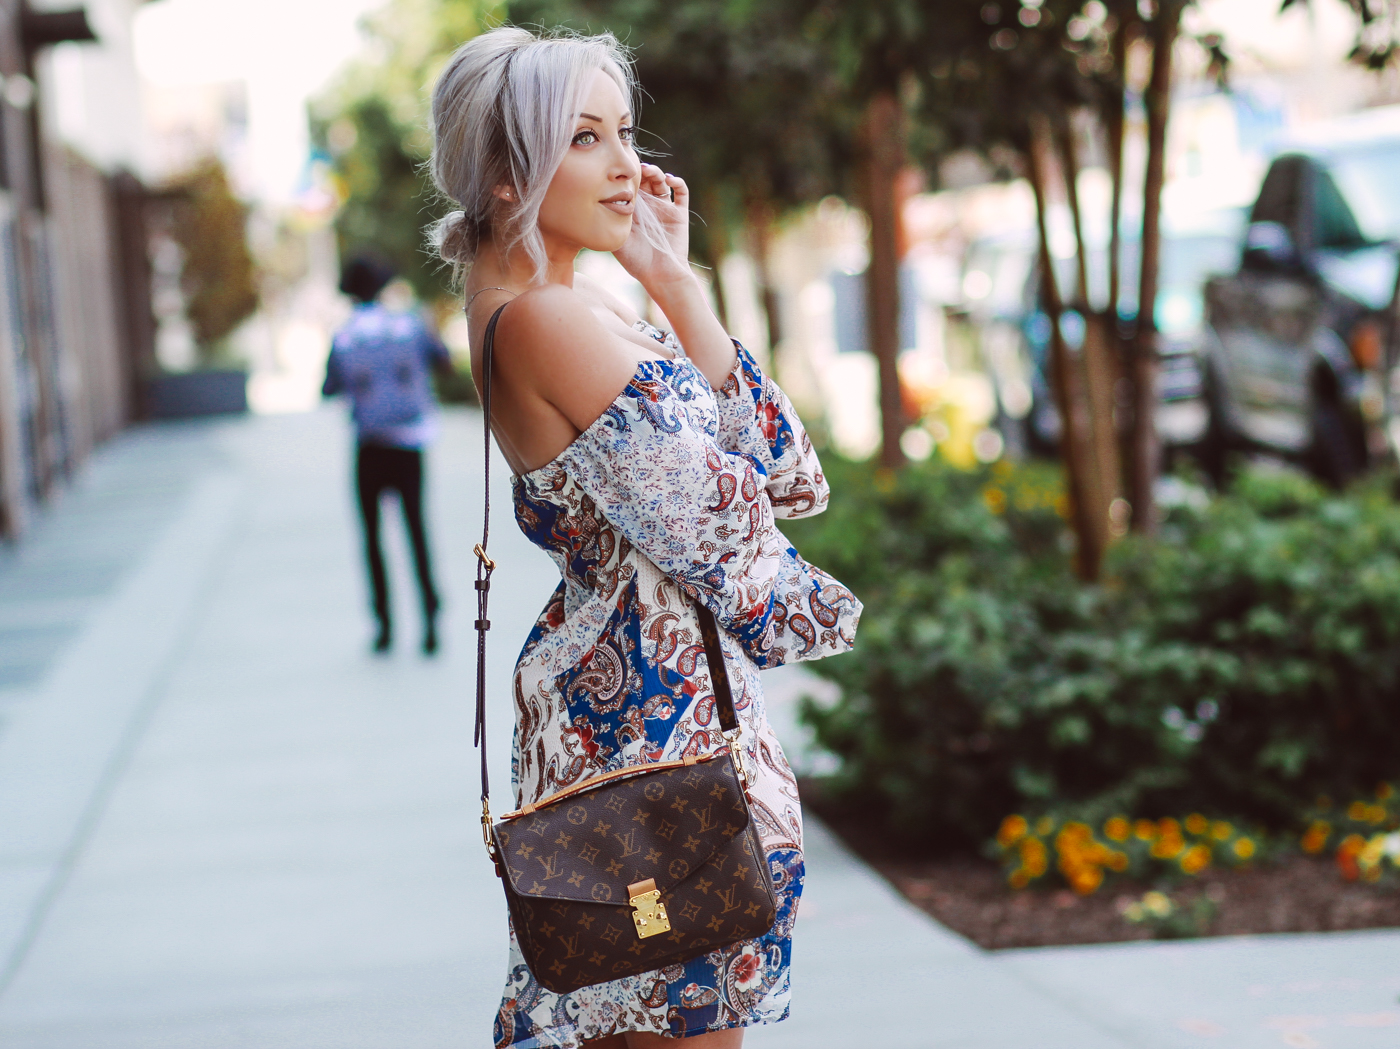 Blondie in the City | Paisley Print Dress | Louis Vuitton Pochette Metis Bag | Street Style